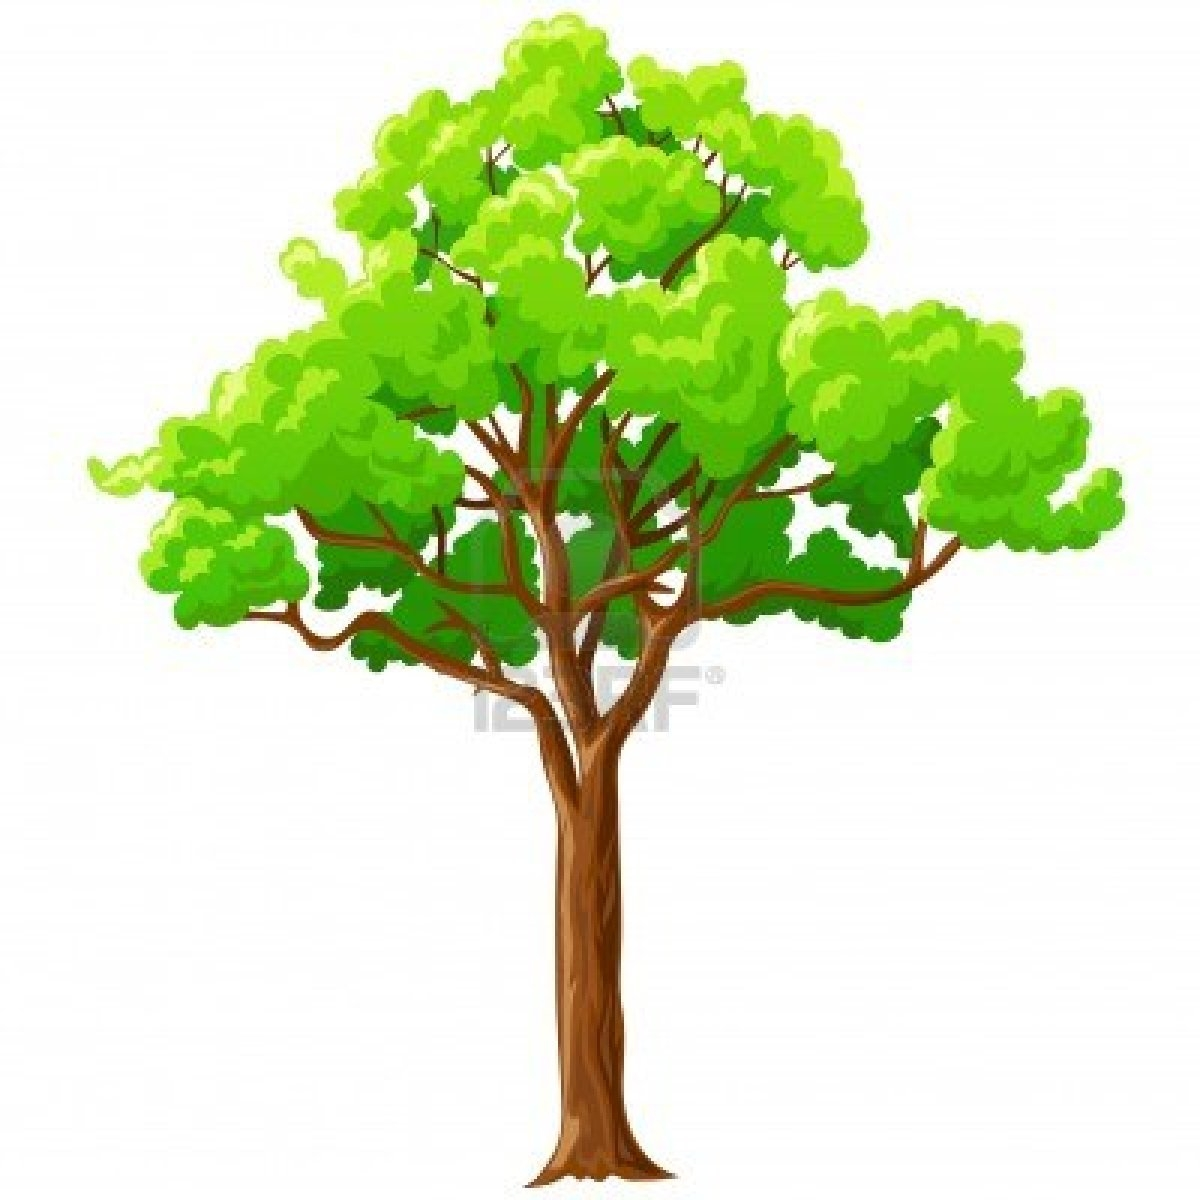 tree clipart wallpaper #8